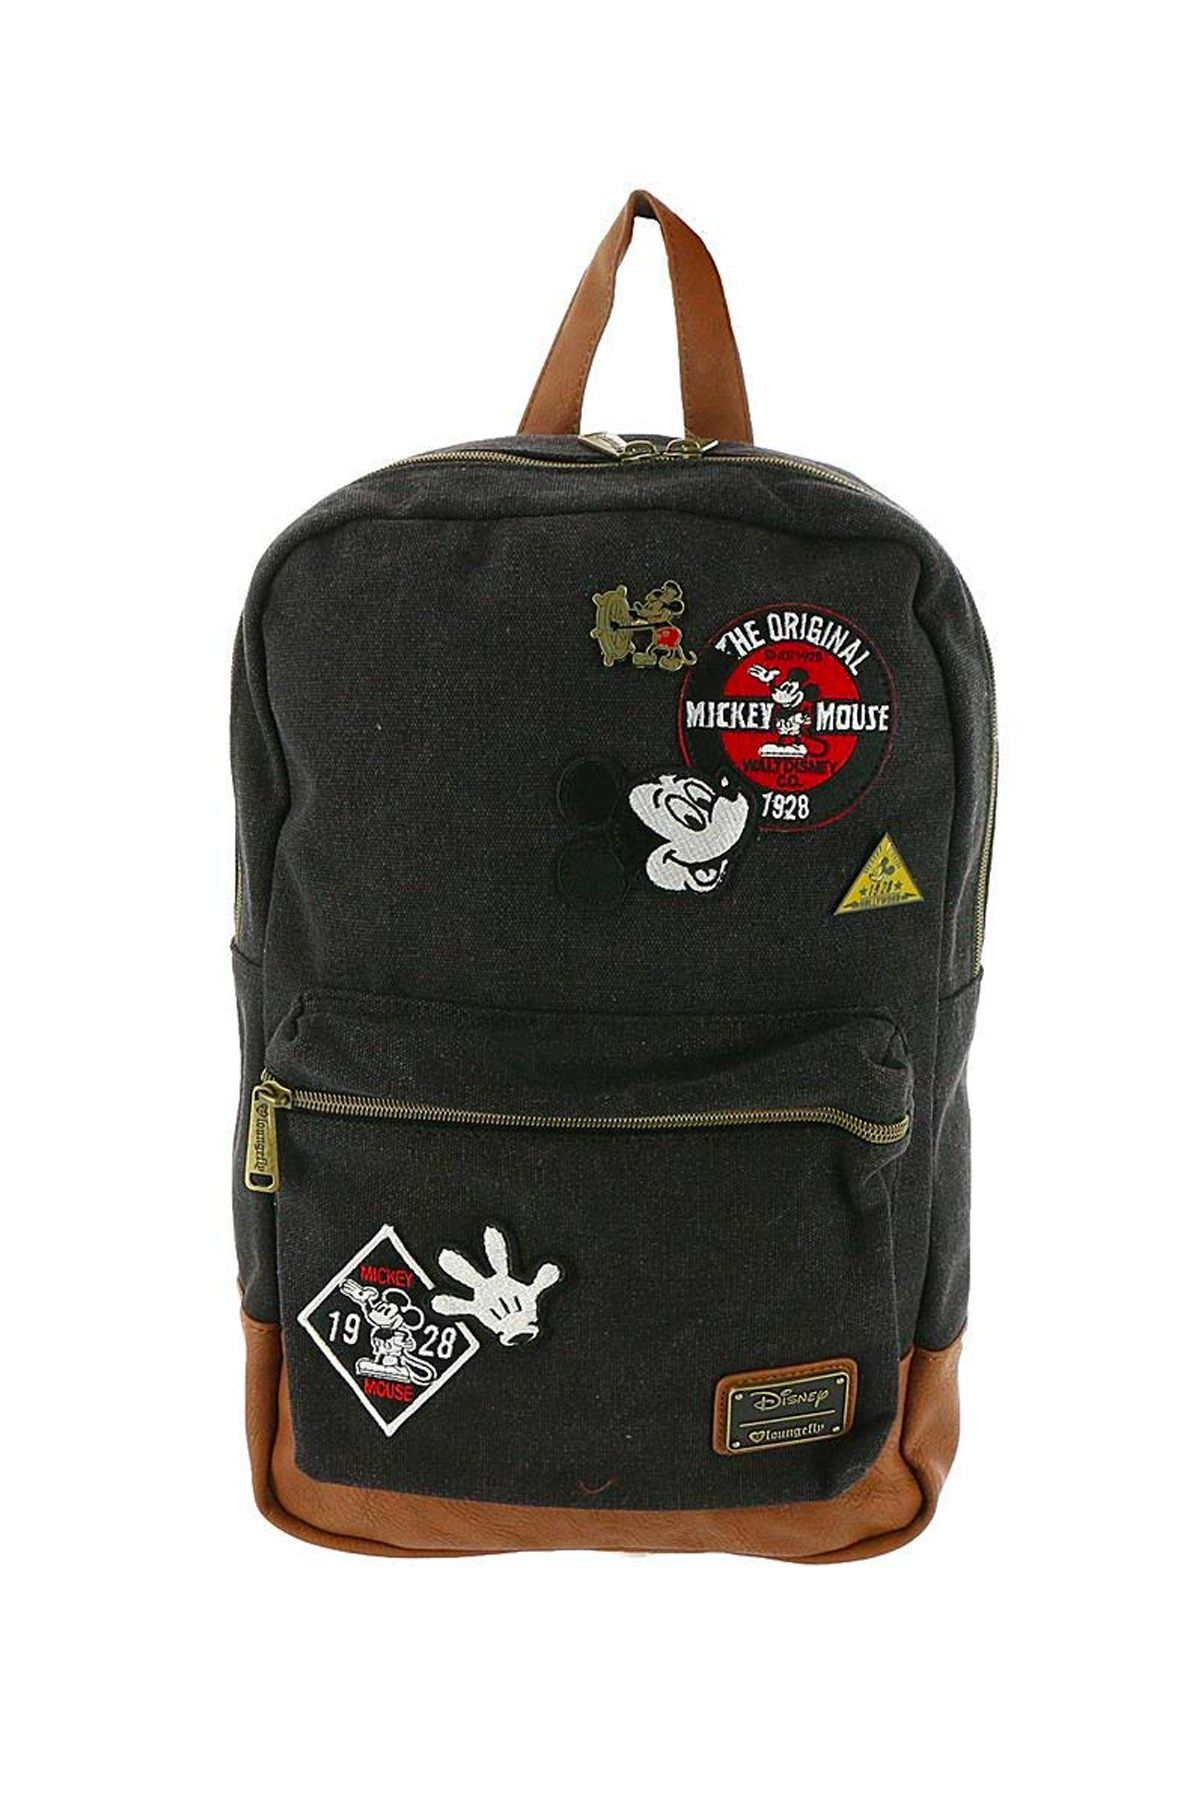 20 Unique Disney Gifts For Adults Christmas Gift Ideas For Disney